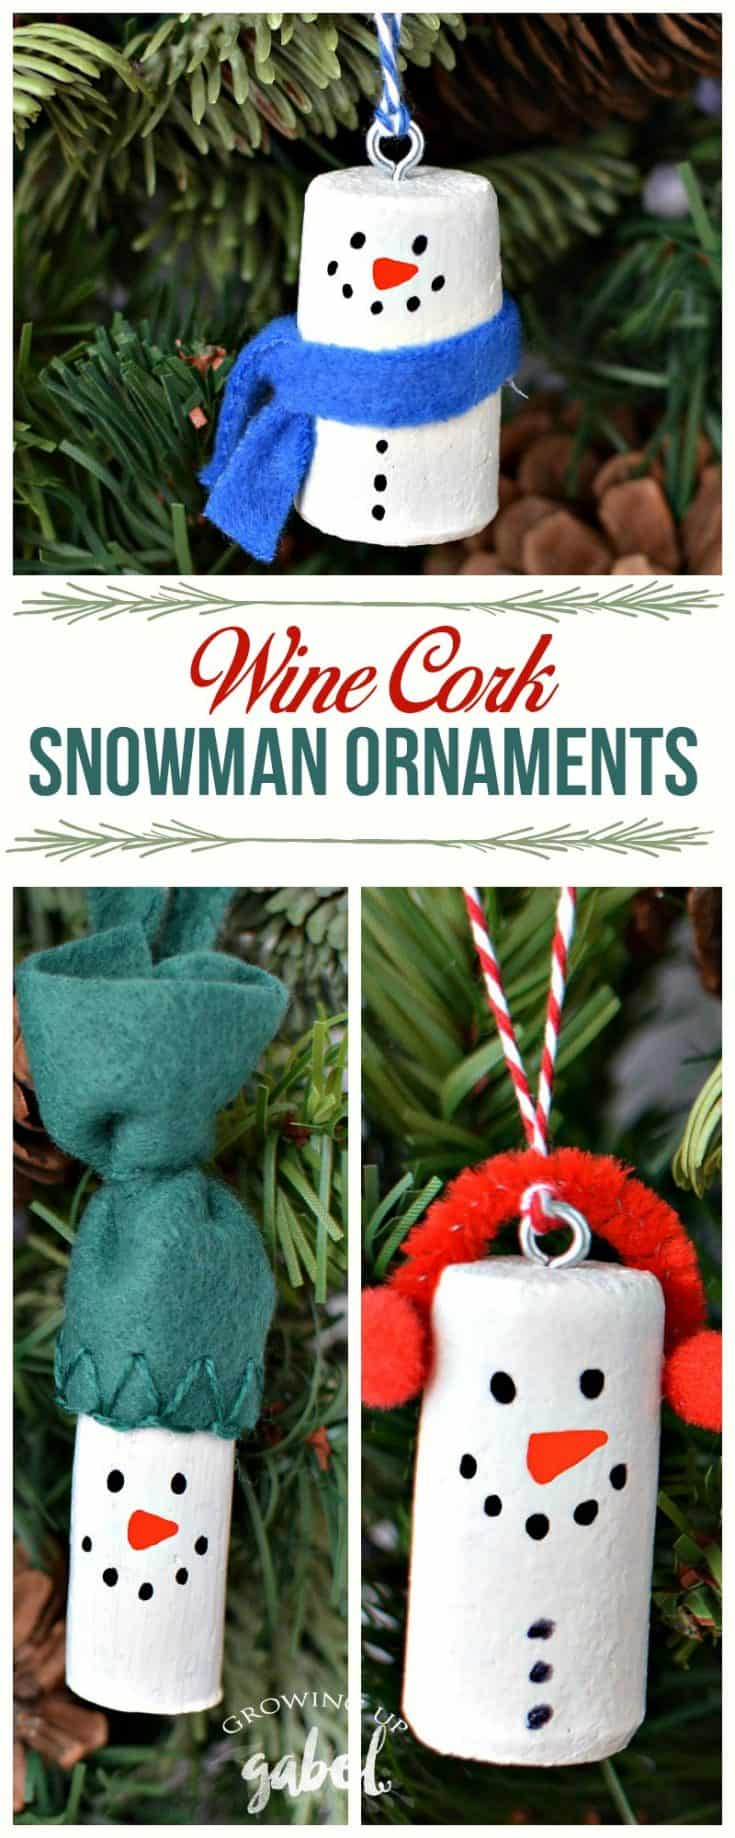 Turn wine corks into snowman ornaments for your Christmas tree. #ChristmasOrnaments #WineCorks #SnowmanOrnaments #WineCorkCrafts #ChristmasCrafts